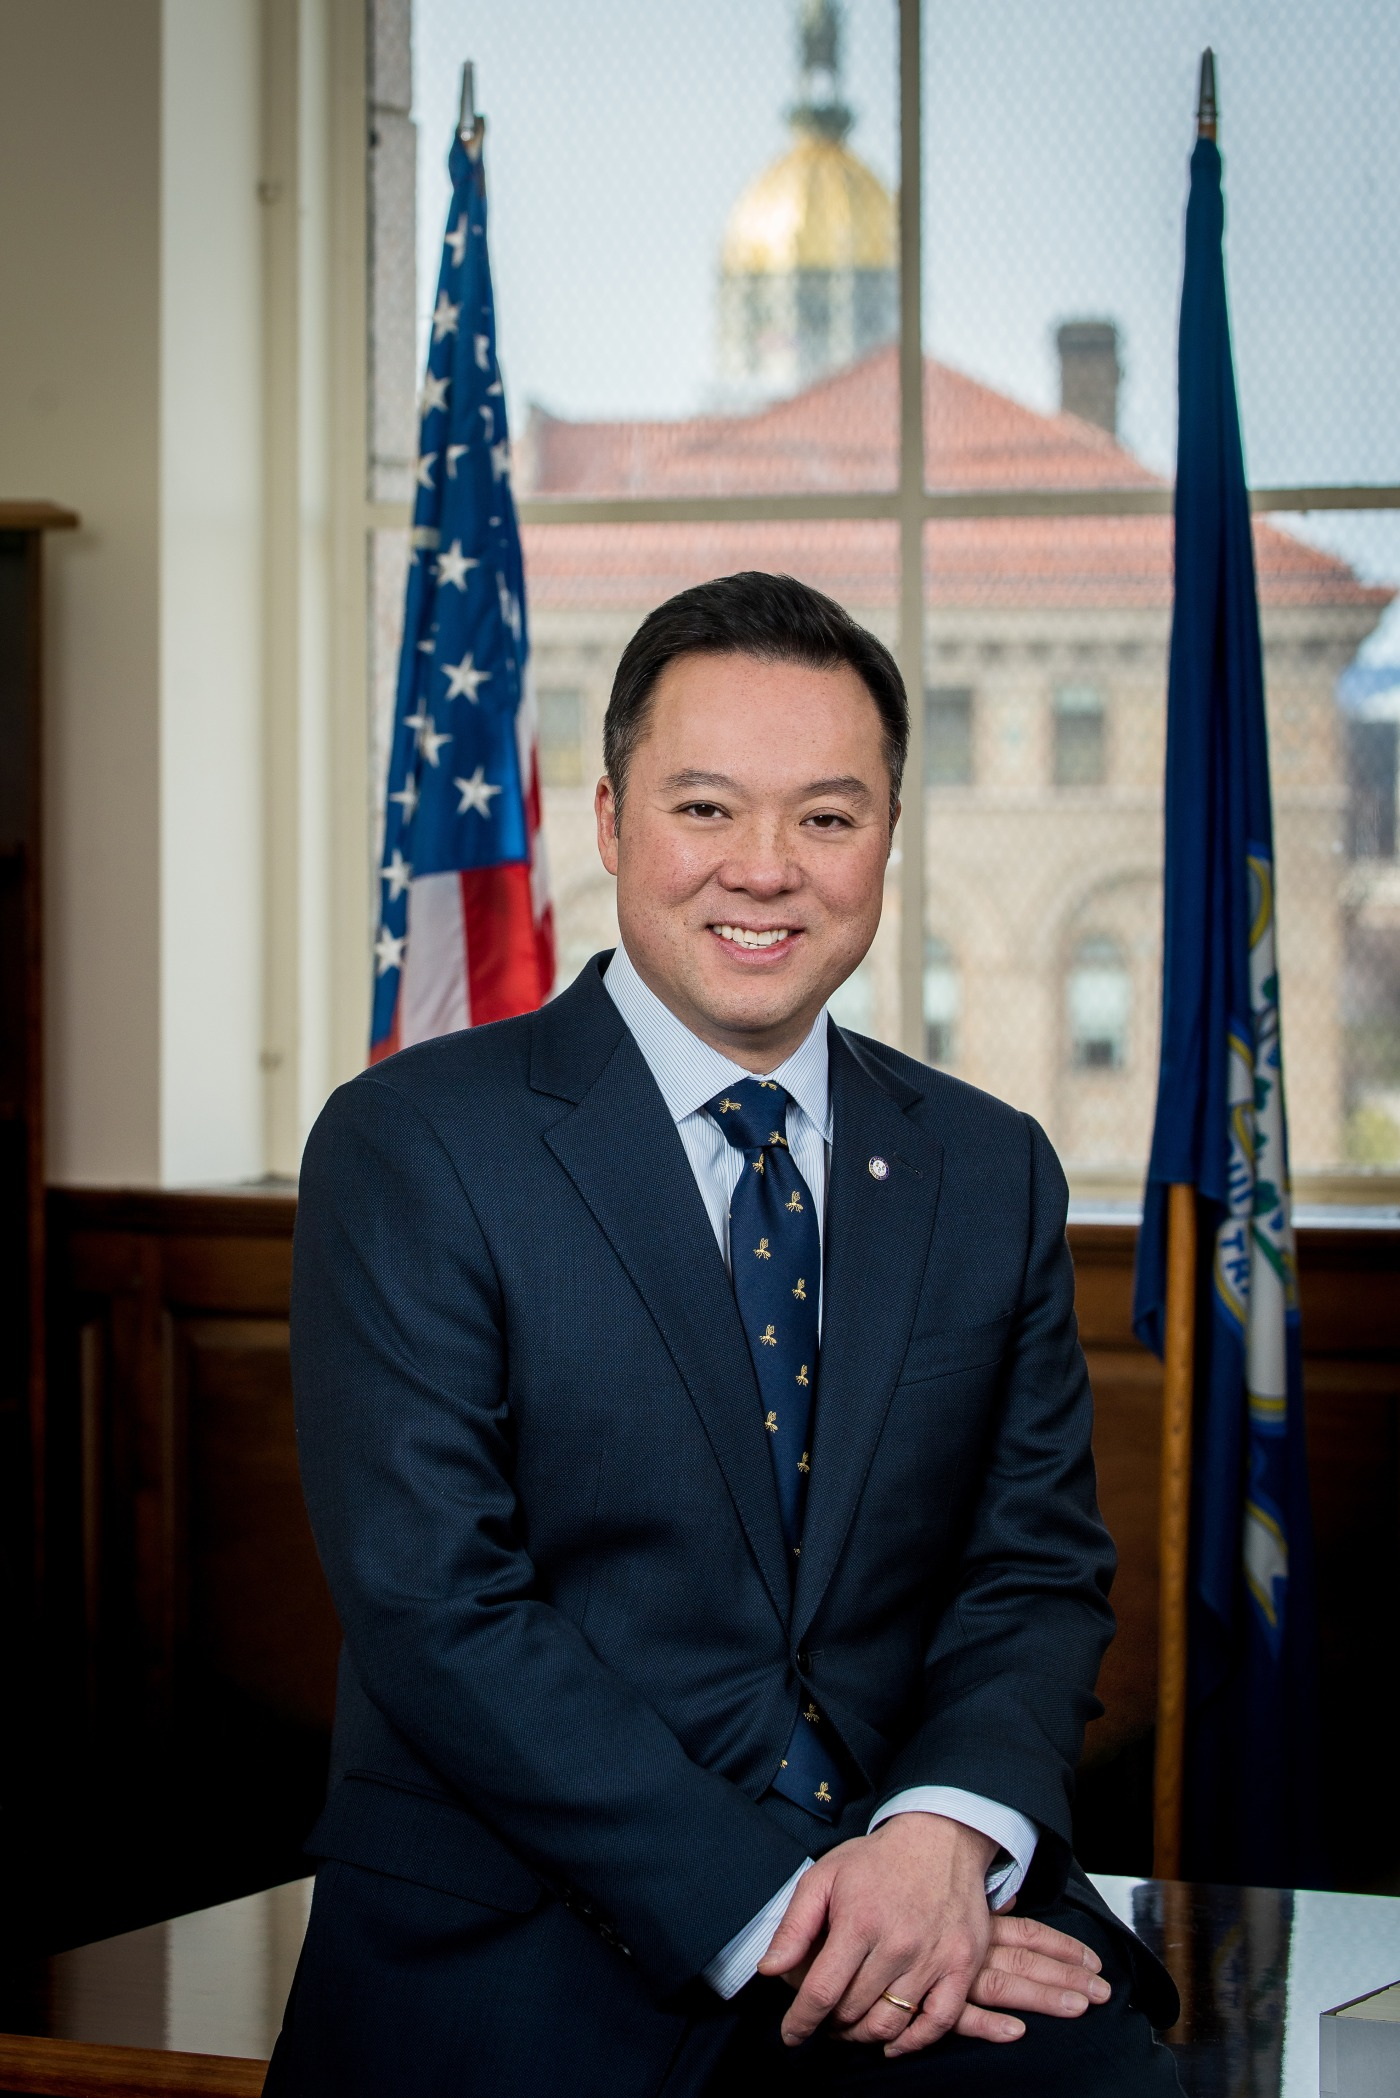 William Tong, Attorney General of Connecticut